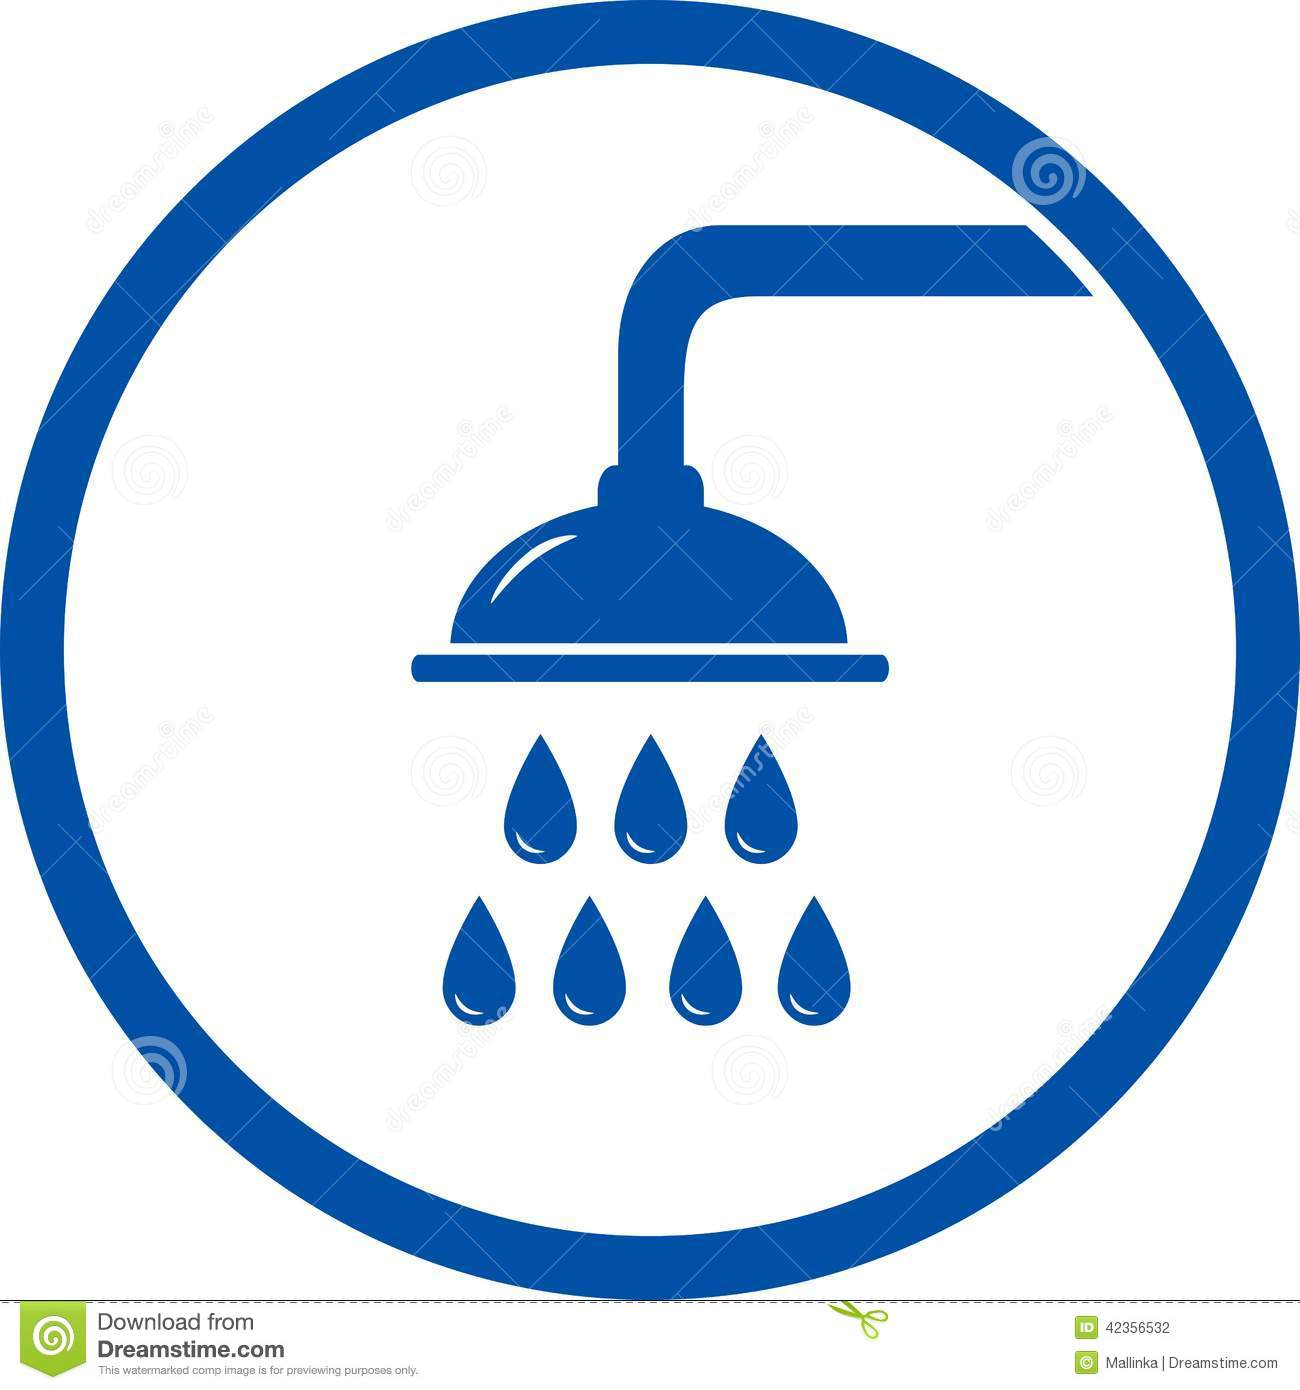 Sign With Shower Head Stock Vector Illustration Of Drip